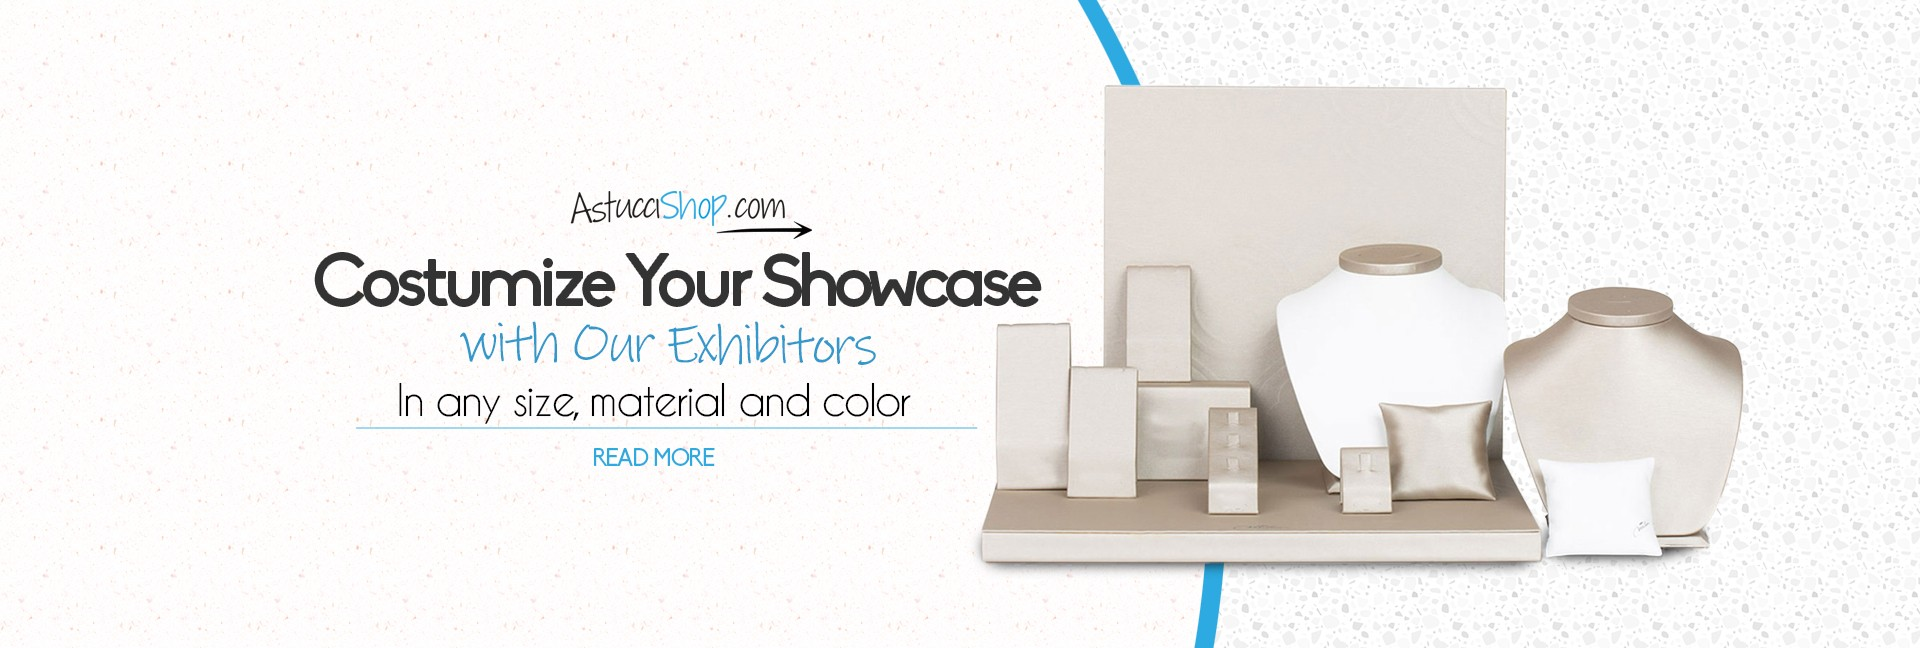 customize your showcase